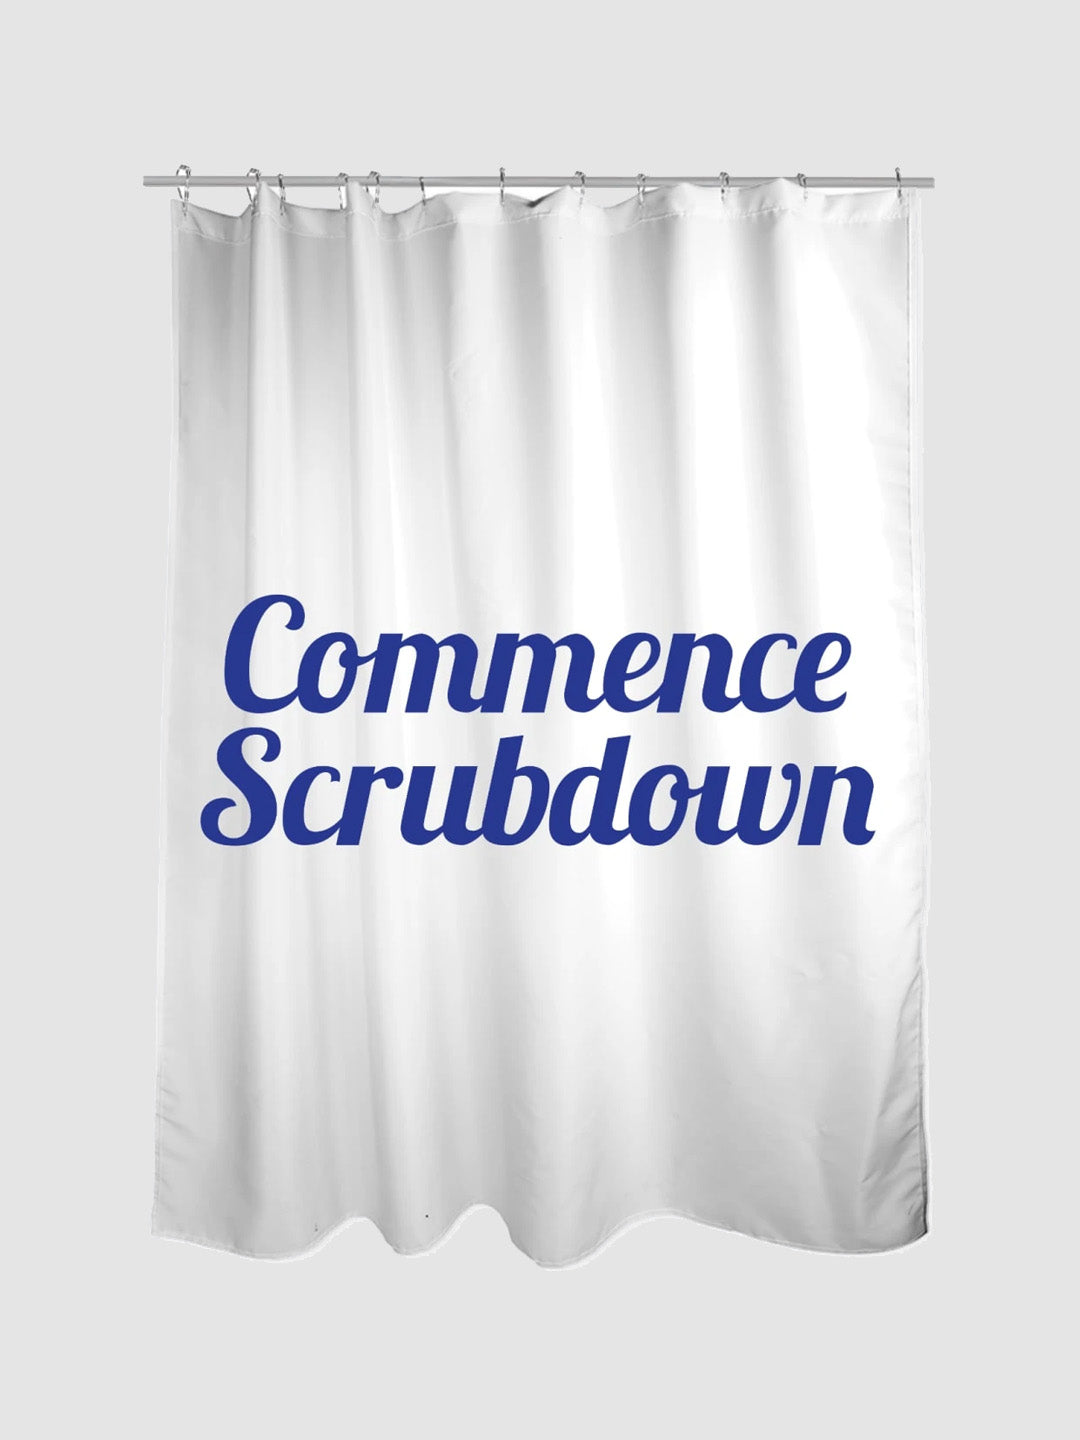 Commence Scrubdown Shower Curtain White